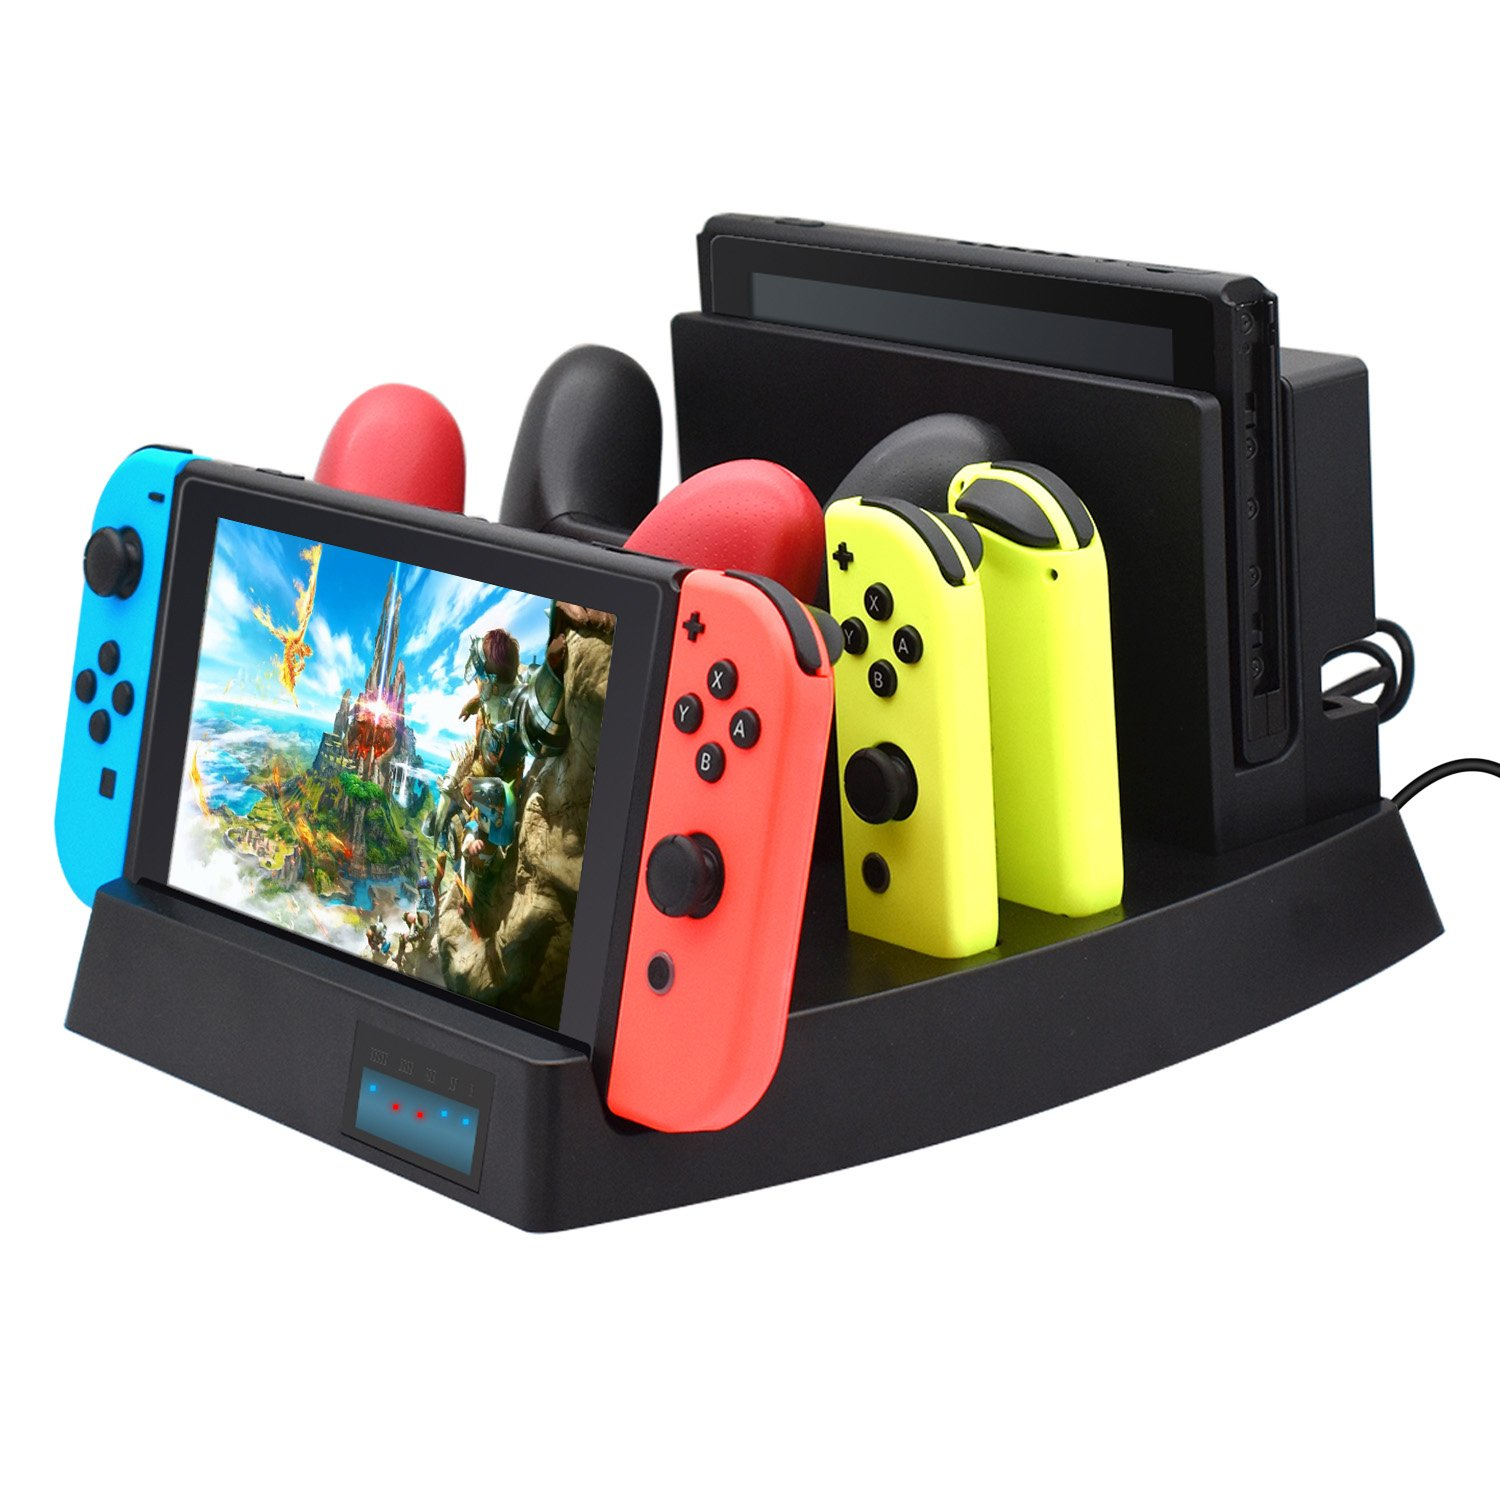 Charging Dock for Nintendo Switch,FYOUNG Charger Stand for Nintendo Switch Console,Switch Pro controllers and Joy-Cons with 1 USB Type-C Cable and 1 DC Cable